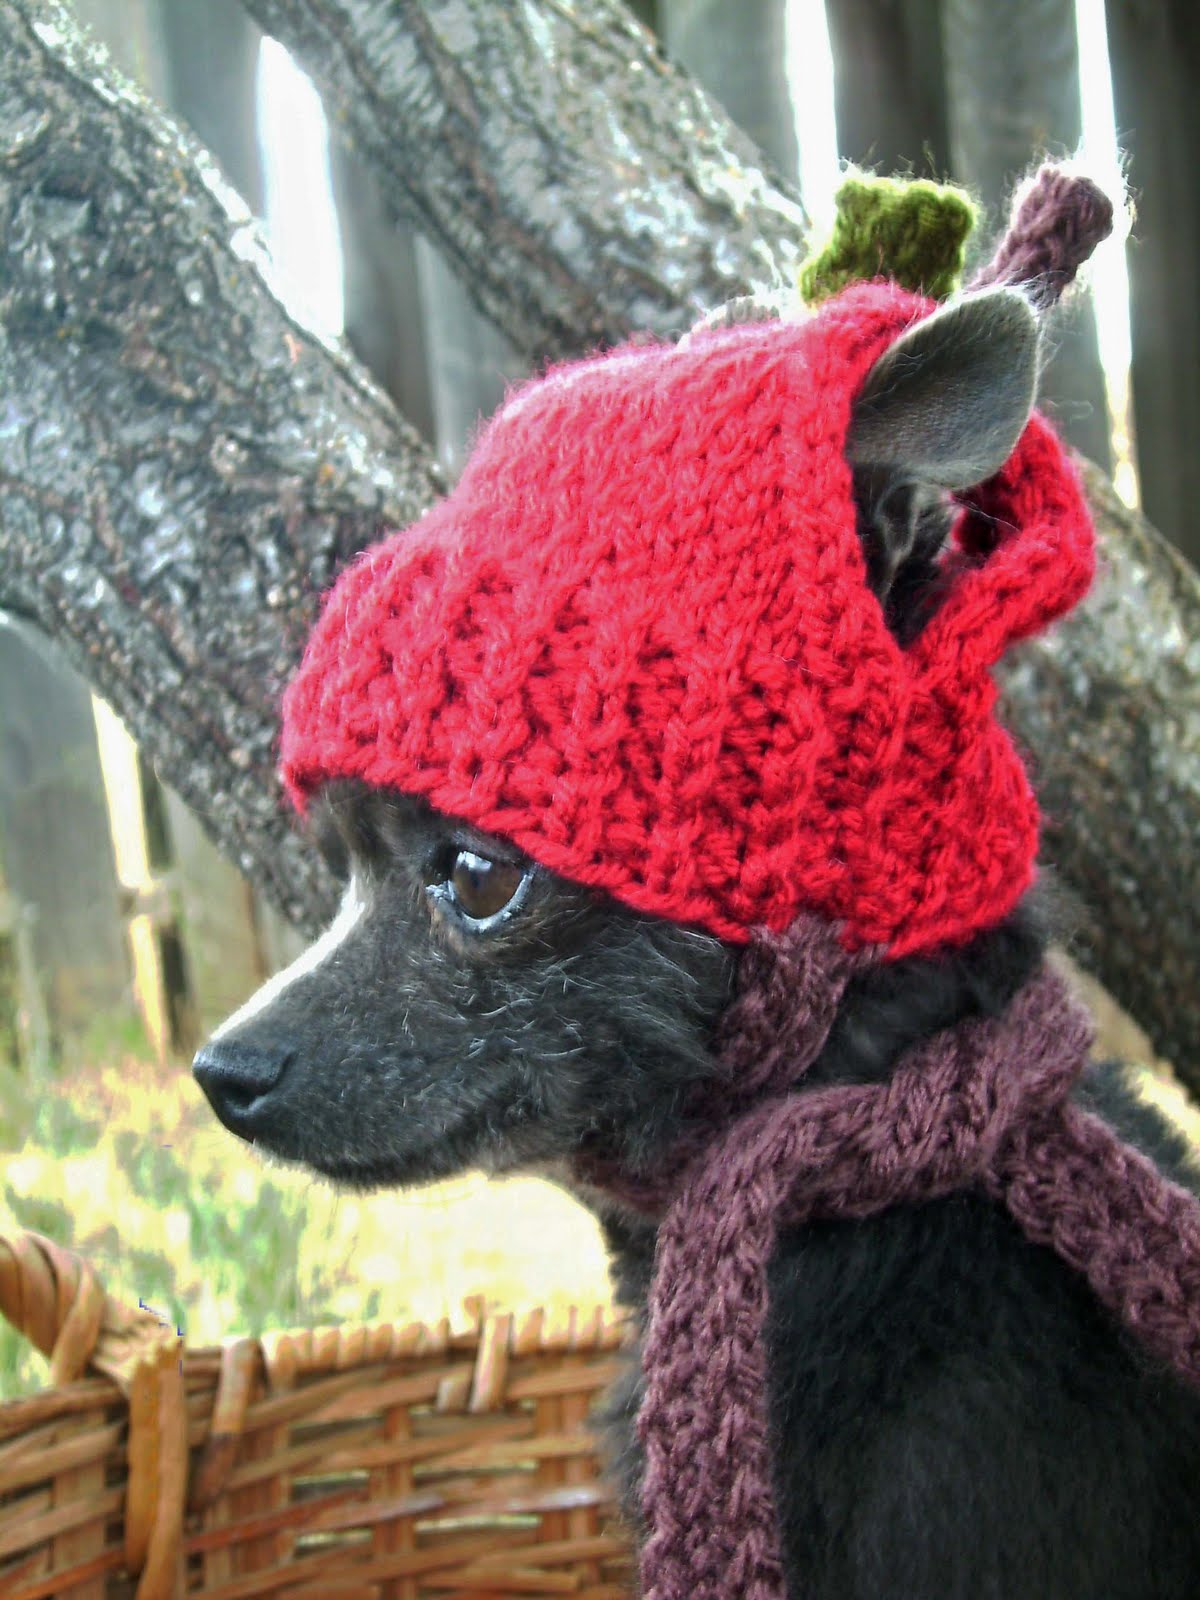 Knitting Pattern Hat Dog : Dog Gone it: Anywear hand knits for dogs